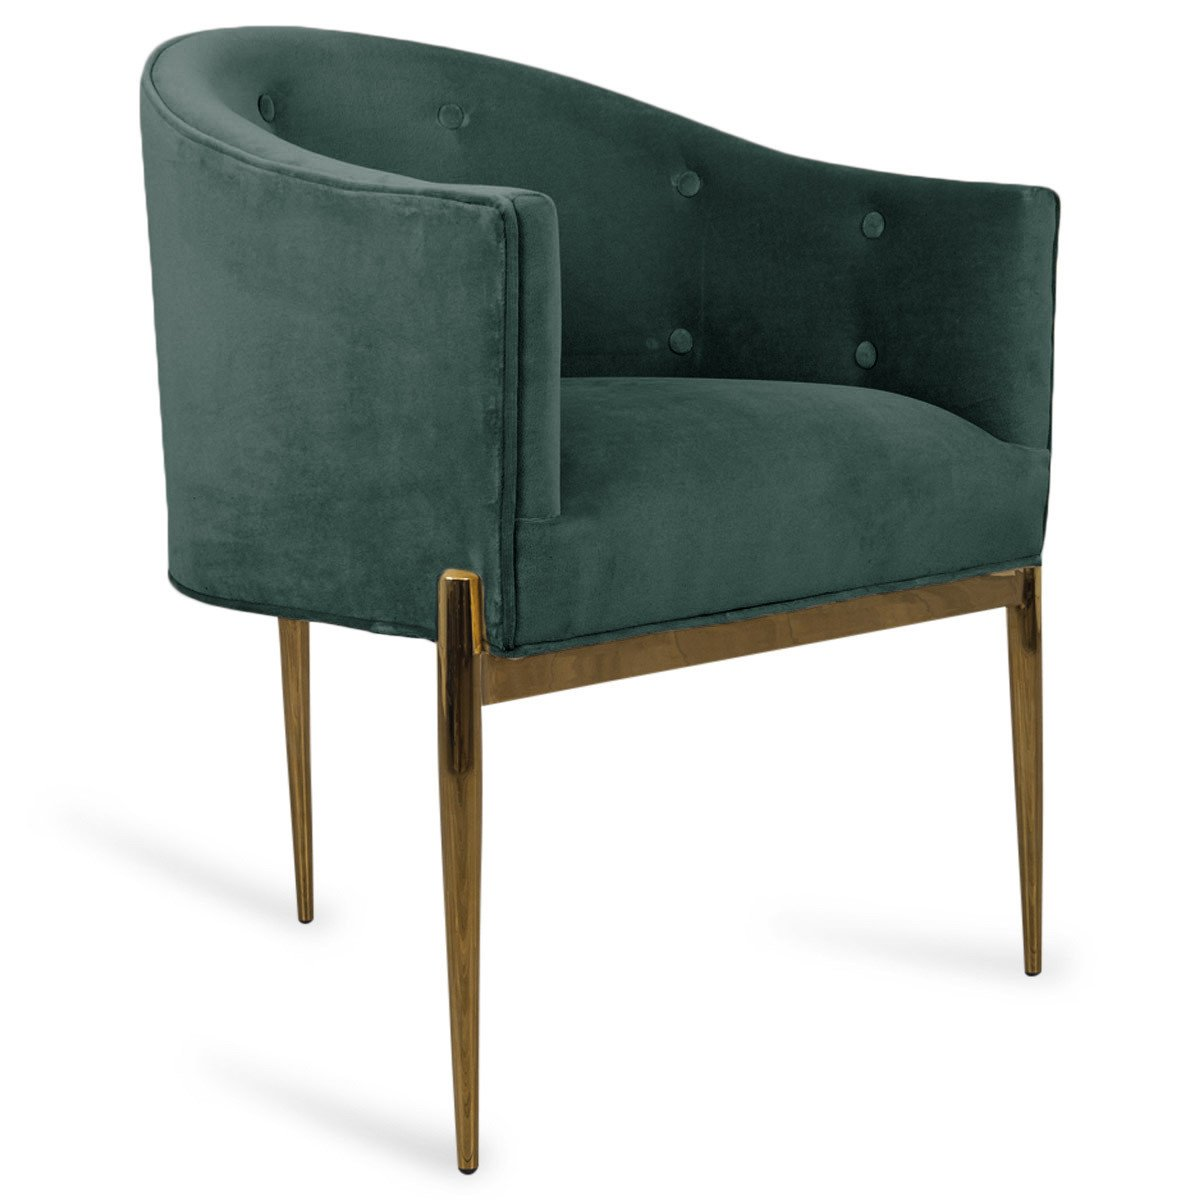 Outstanding Art Deco Dining Chair In Velvet Dining Chairs Upholstered Creativecarmelina Interior Chair Design Creativecarmelinacom